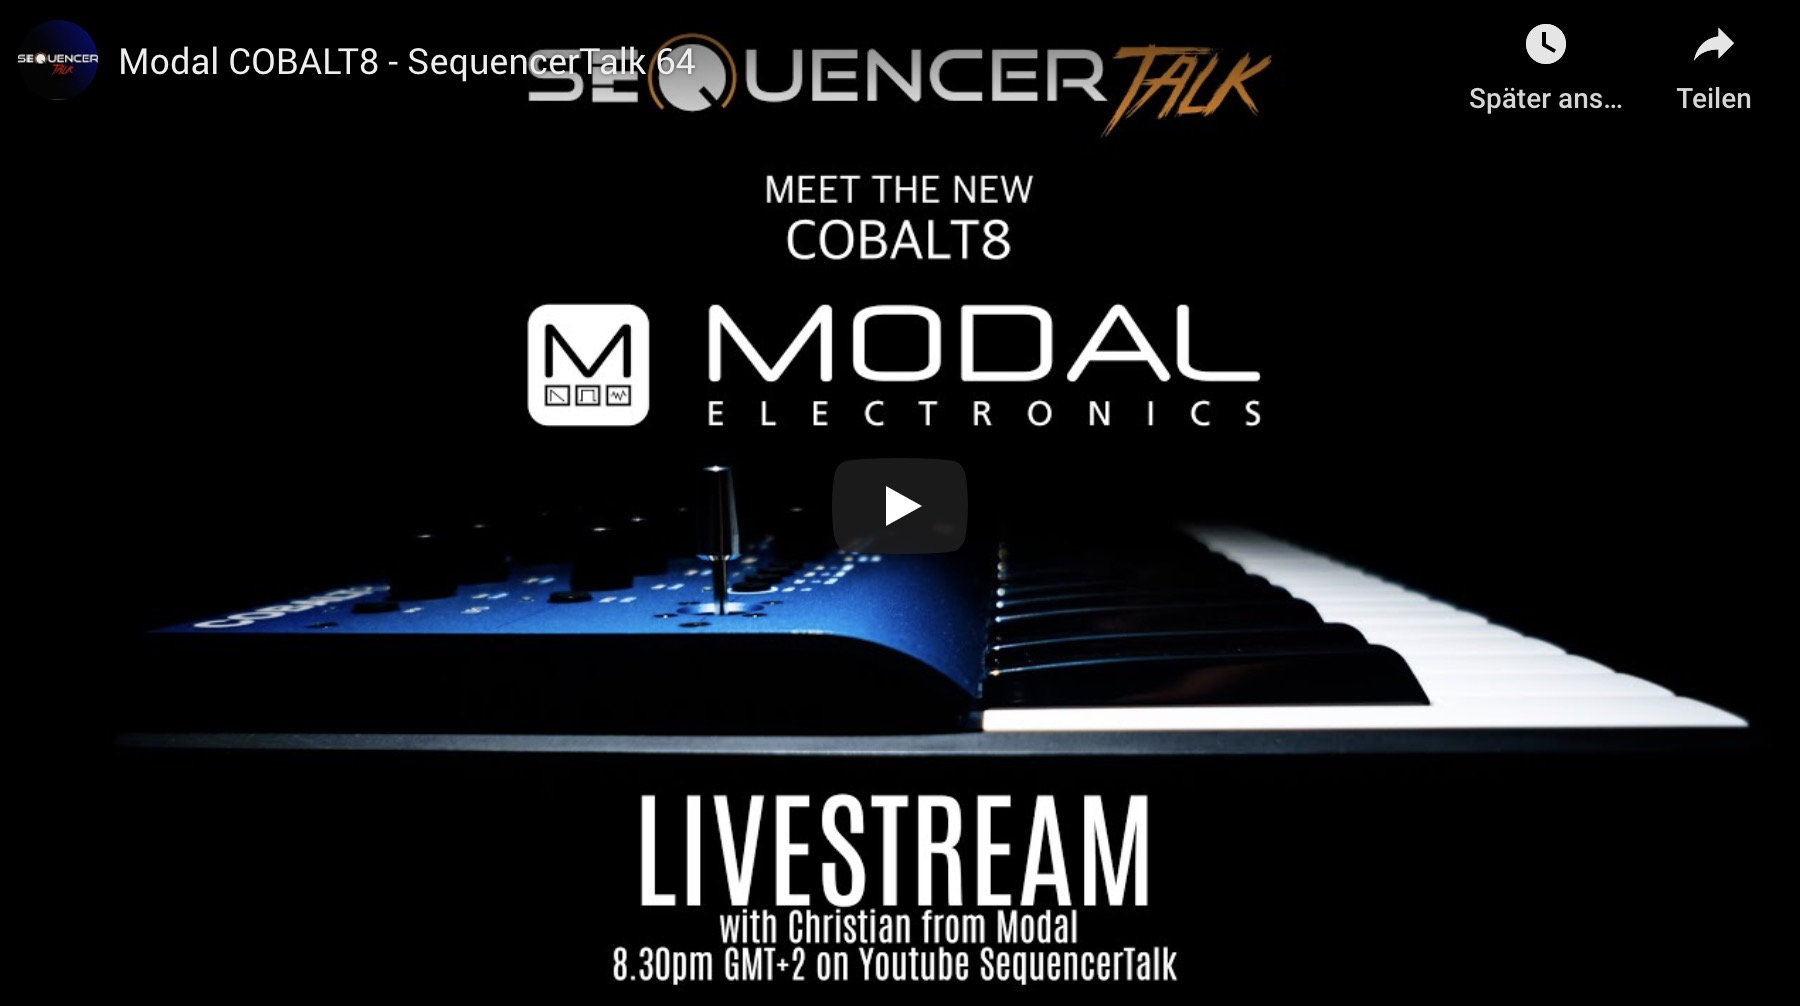 SequencerTalk Modal Cobalt8